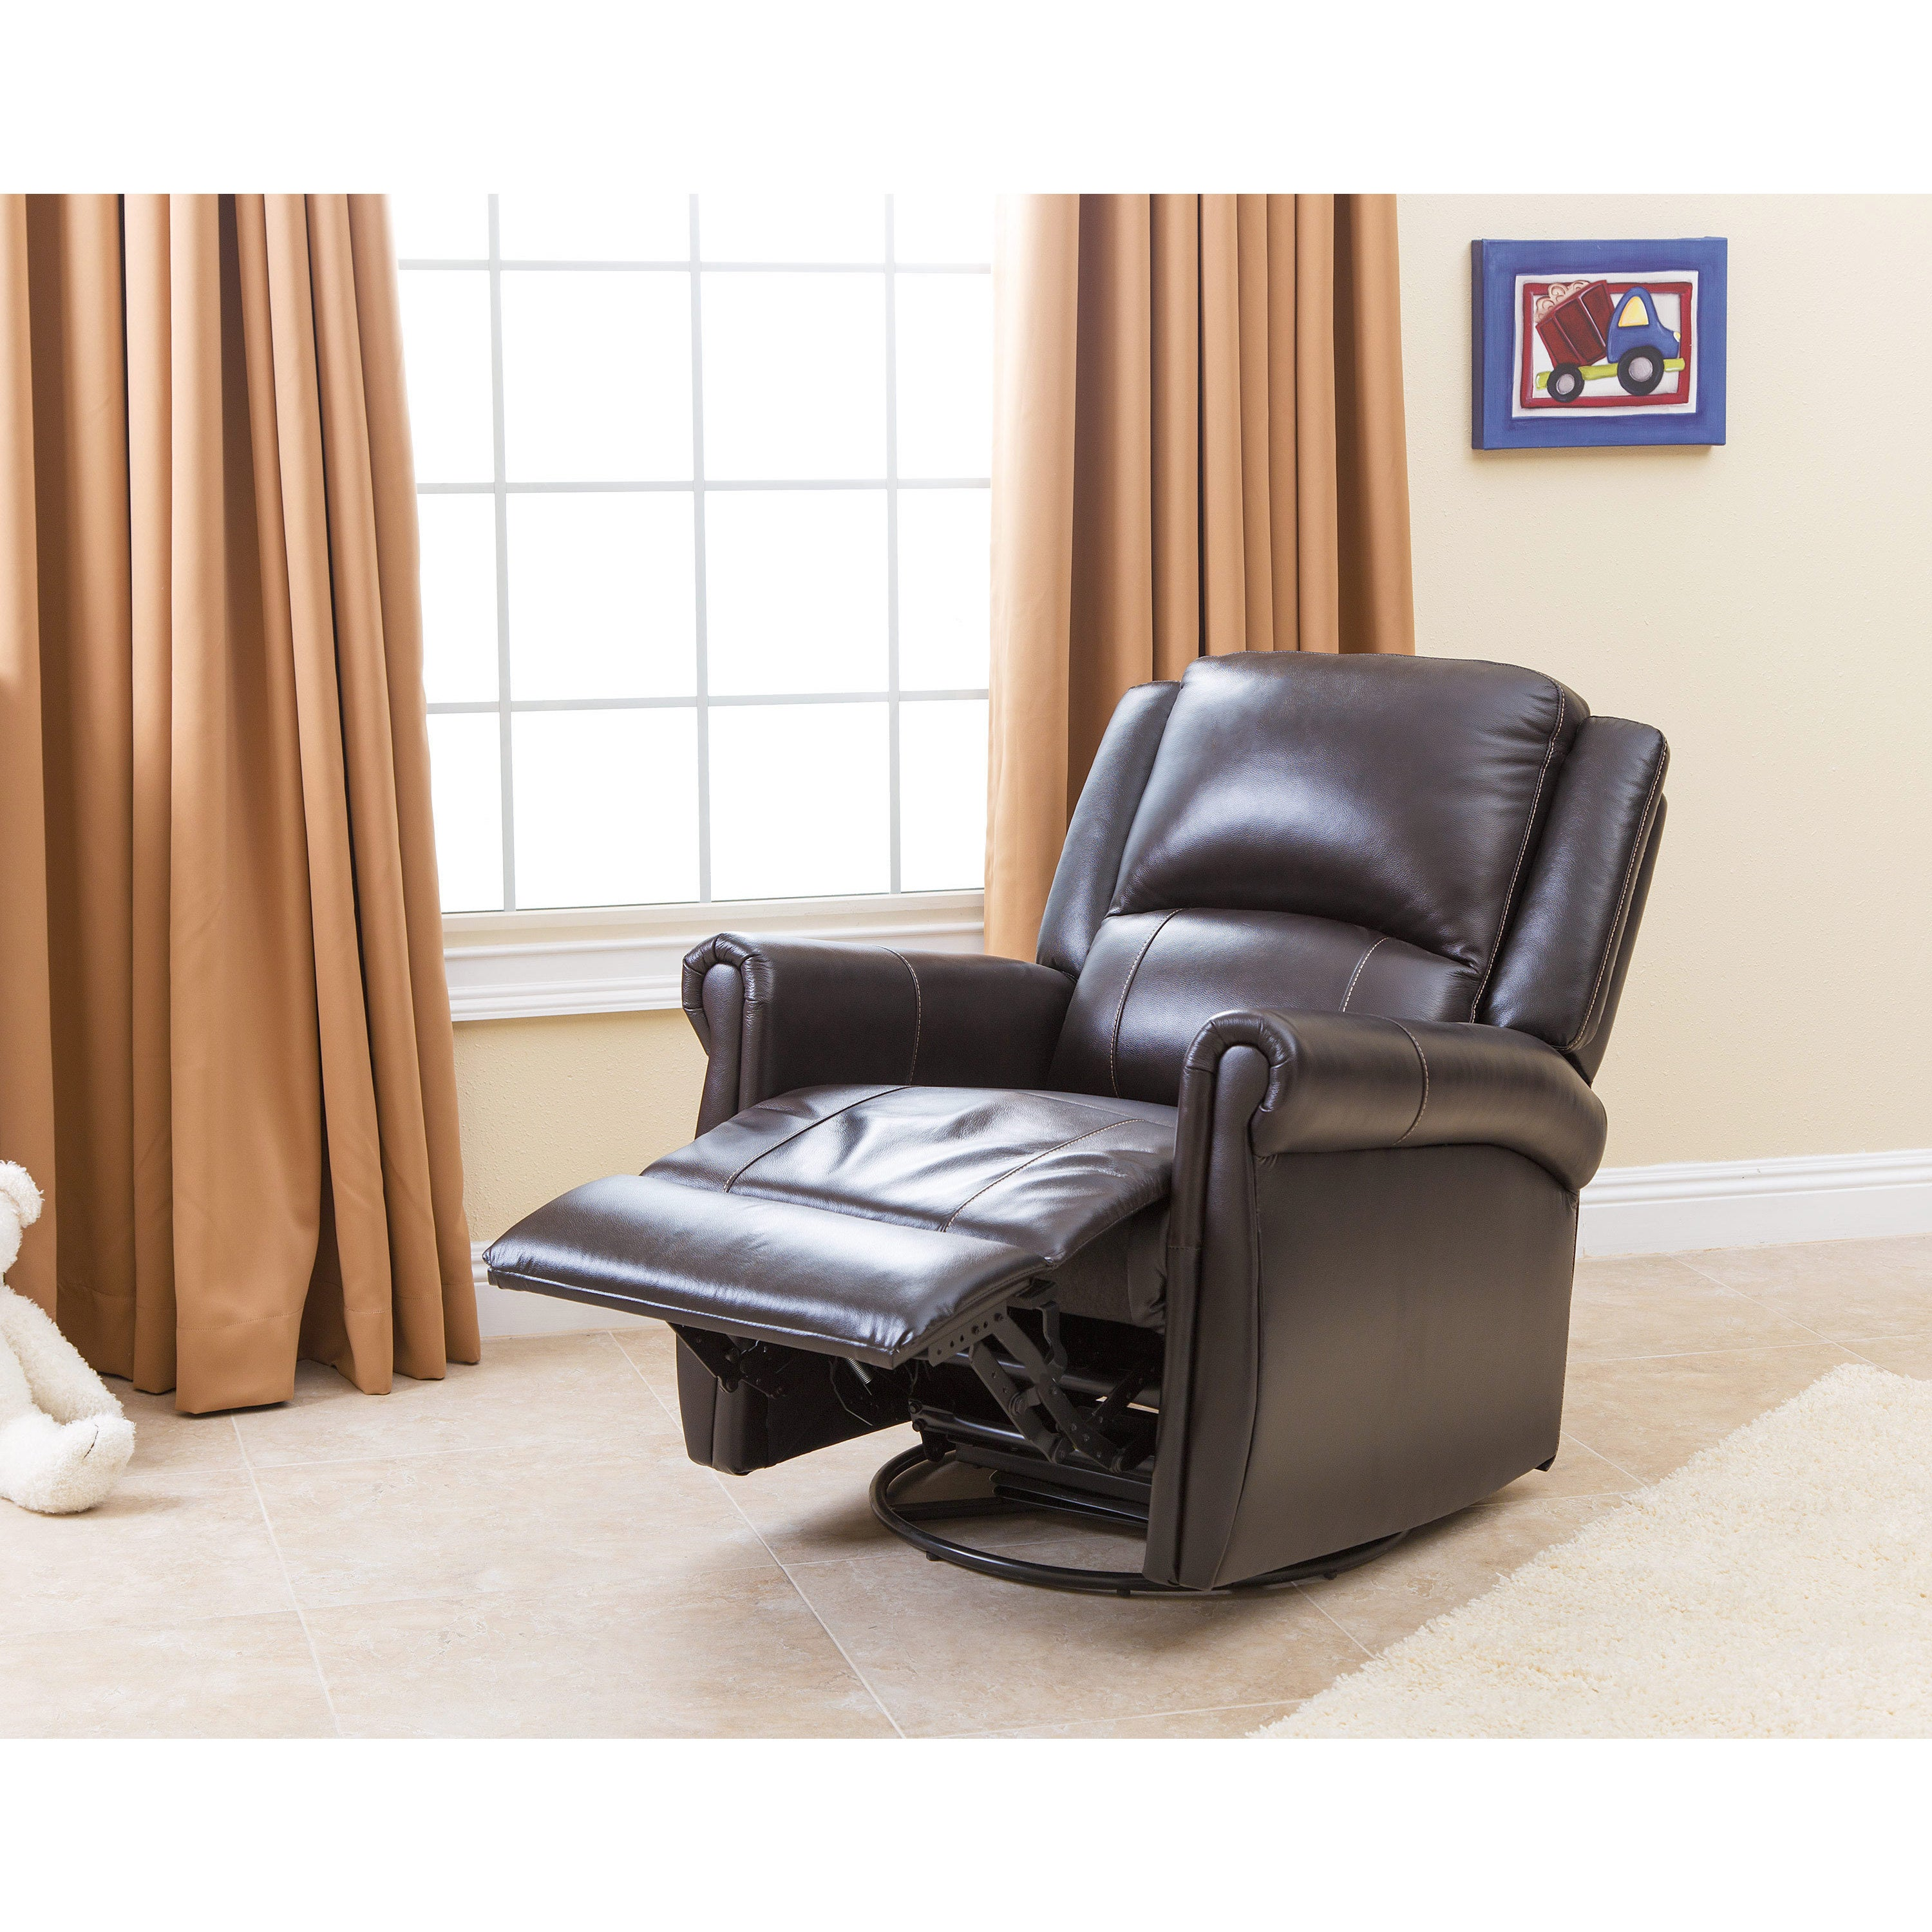 nursery recliner chair best every a and budget glider baby furniture chris julia comfortable loves ottoman rocking rocker gliders at plans